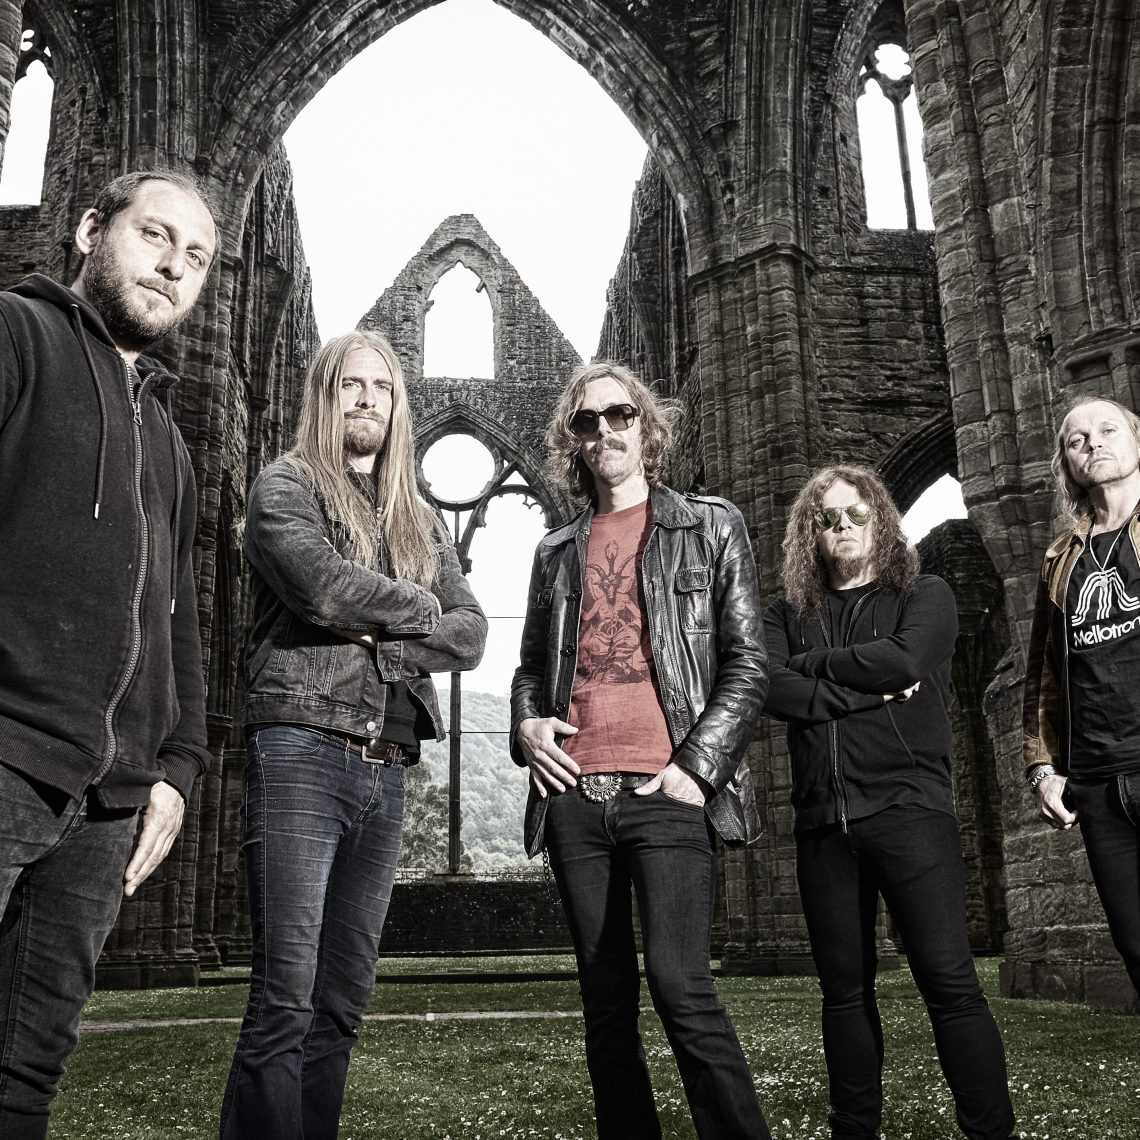 OPETH set to release 'Garden of the Titans: Live at Red Rocks Amphitheater' CD/DVD